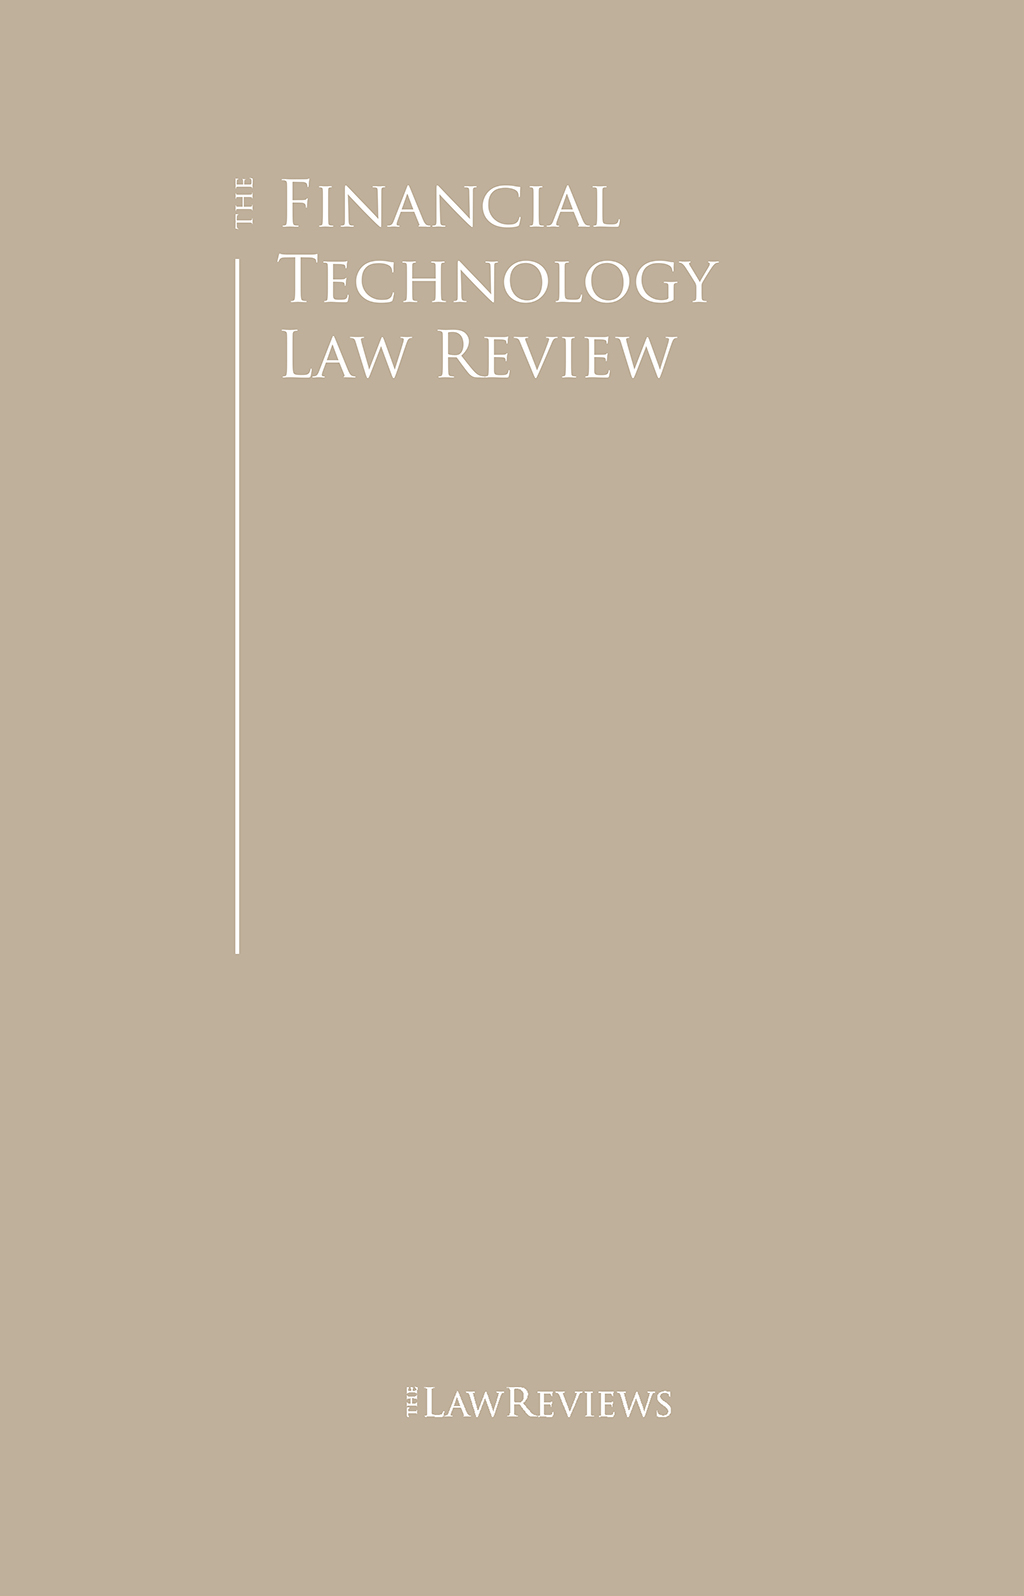 The Financial Technology Law Review